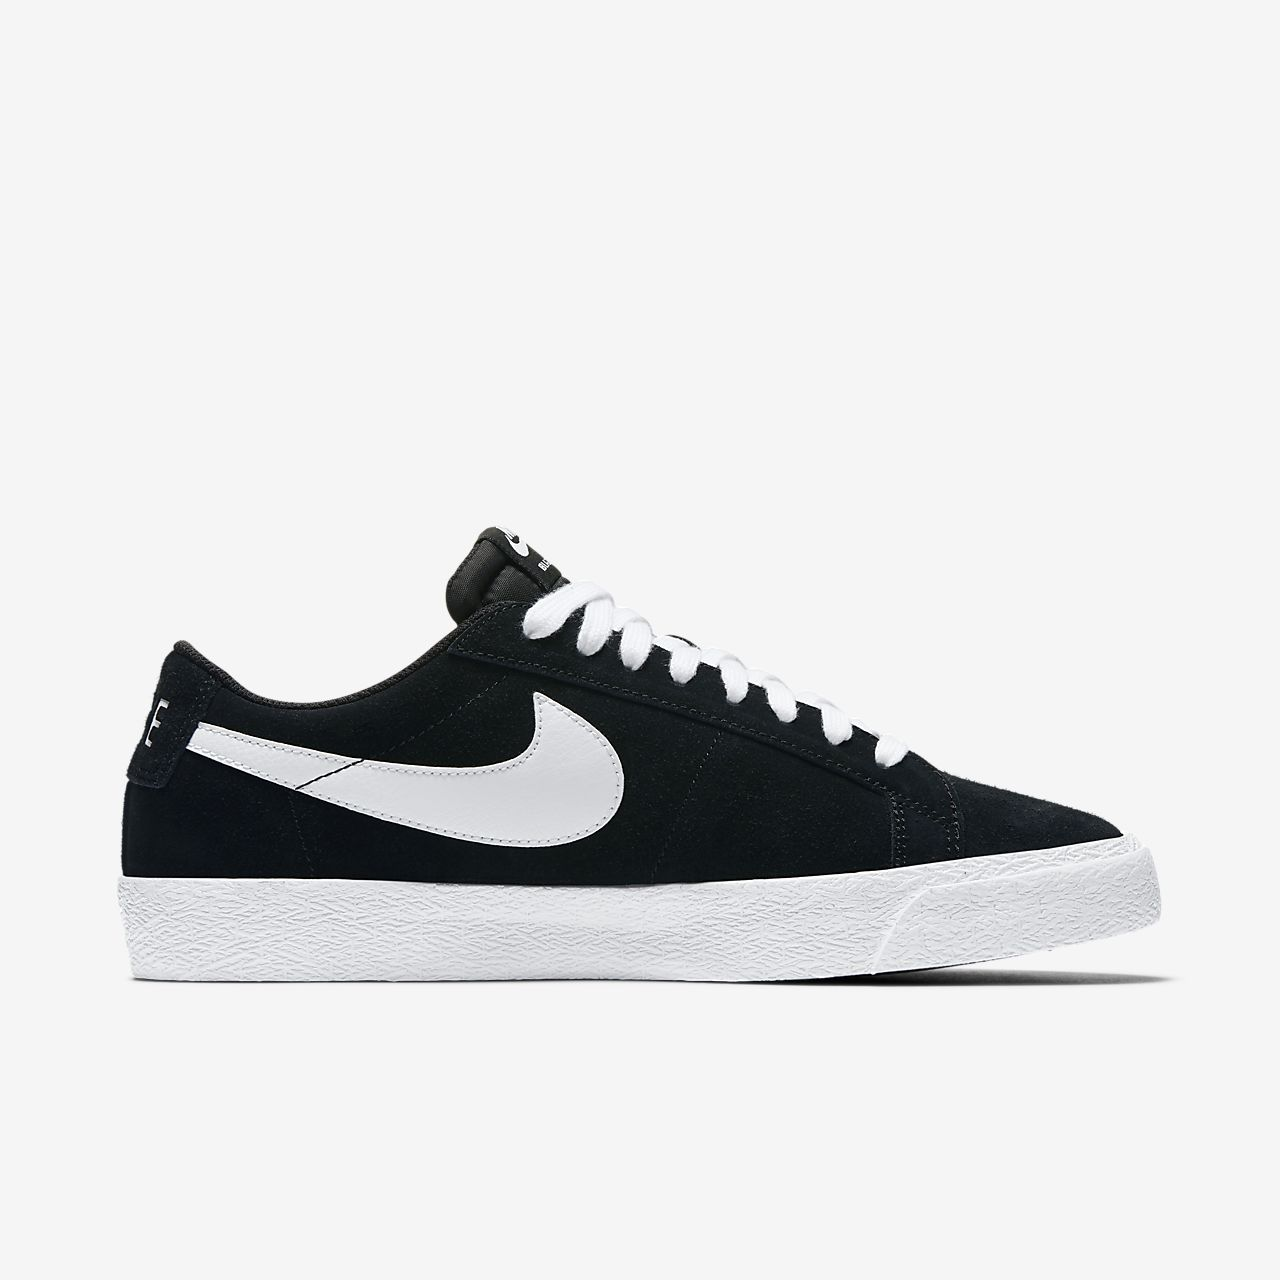 reputable site cfc1a 08021 ... Nike SB Blazer Zoom Low Mens Skateboarding Shoe